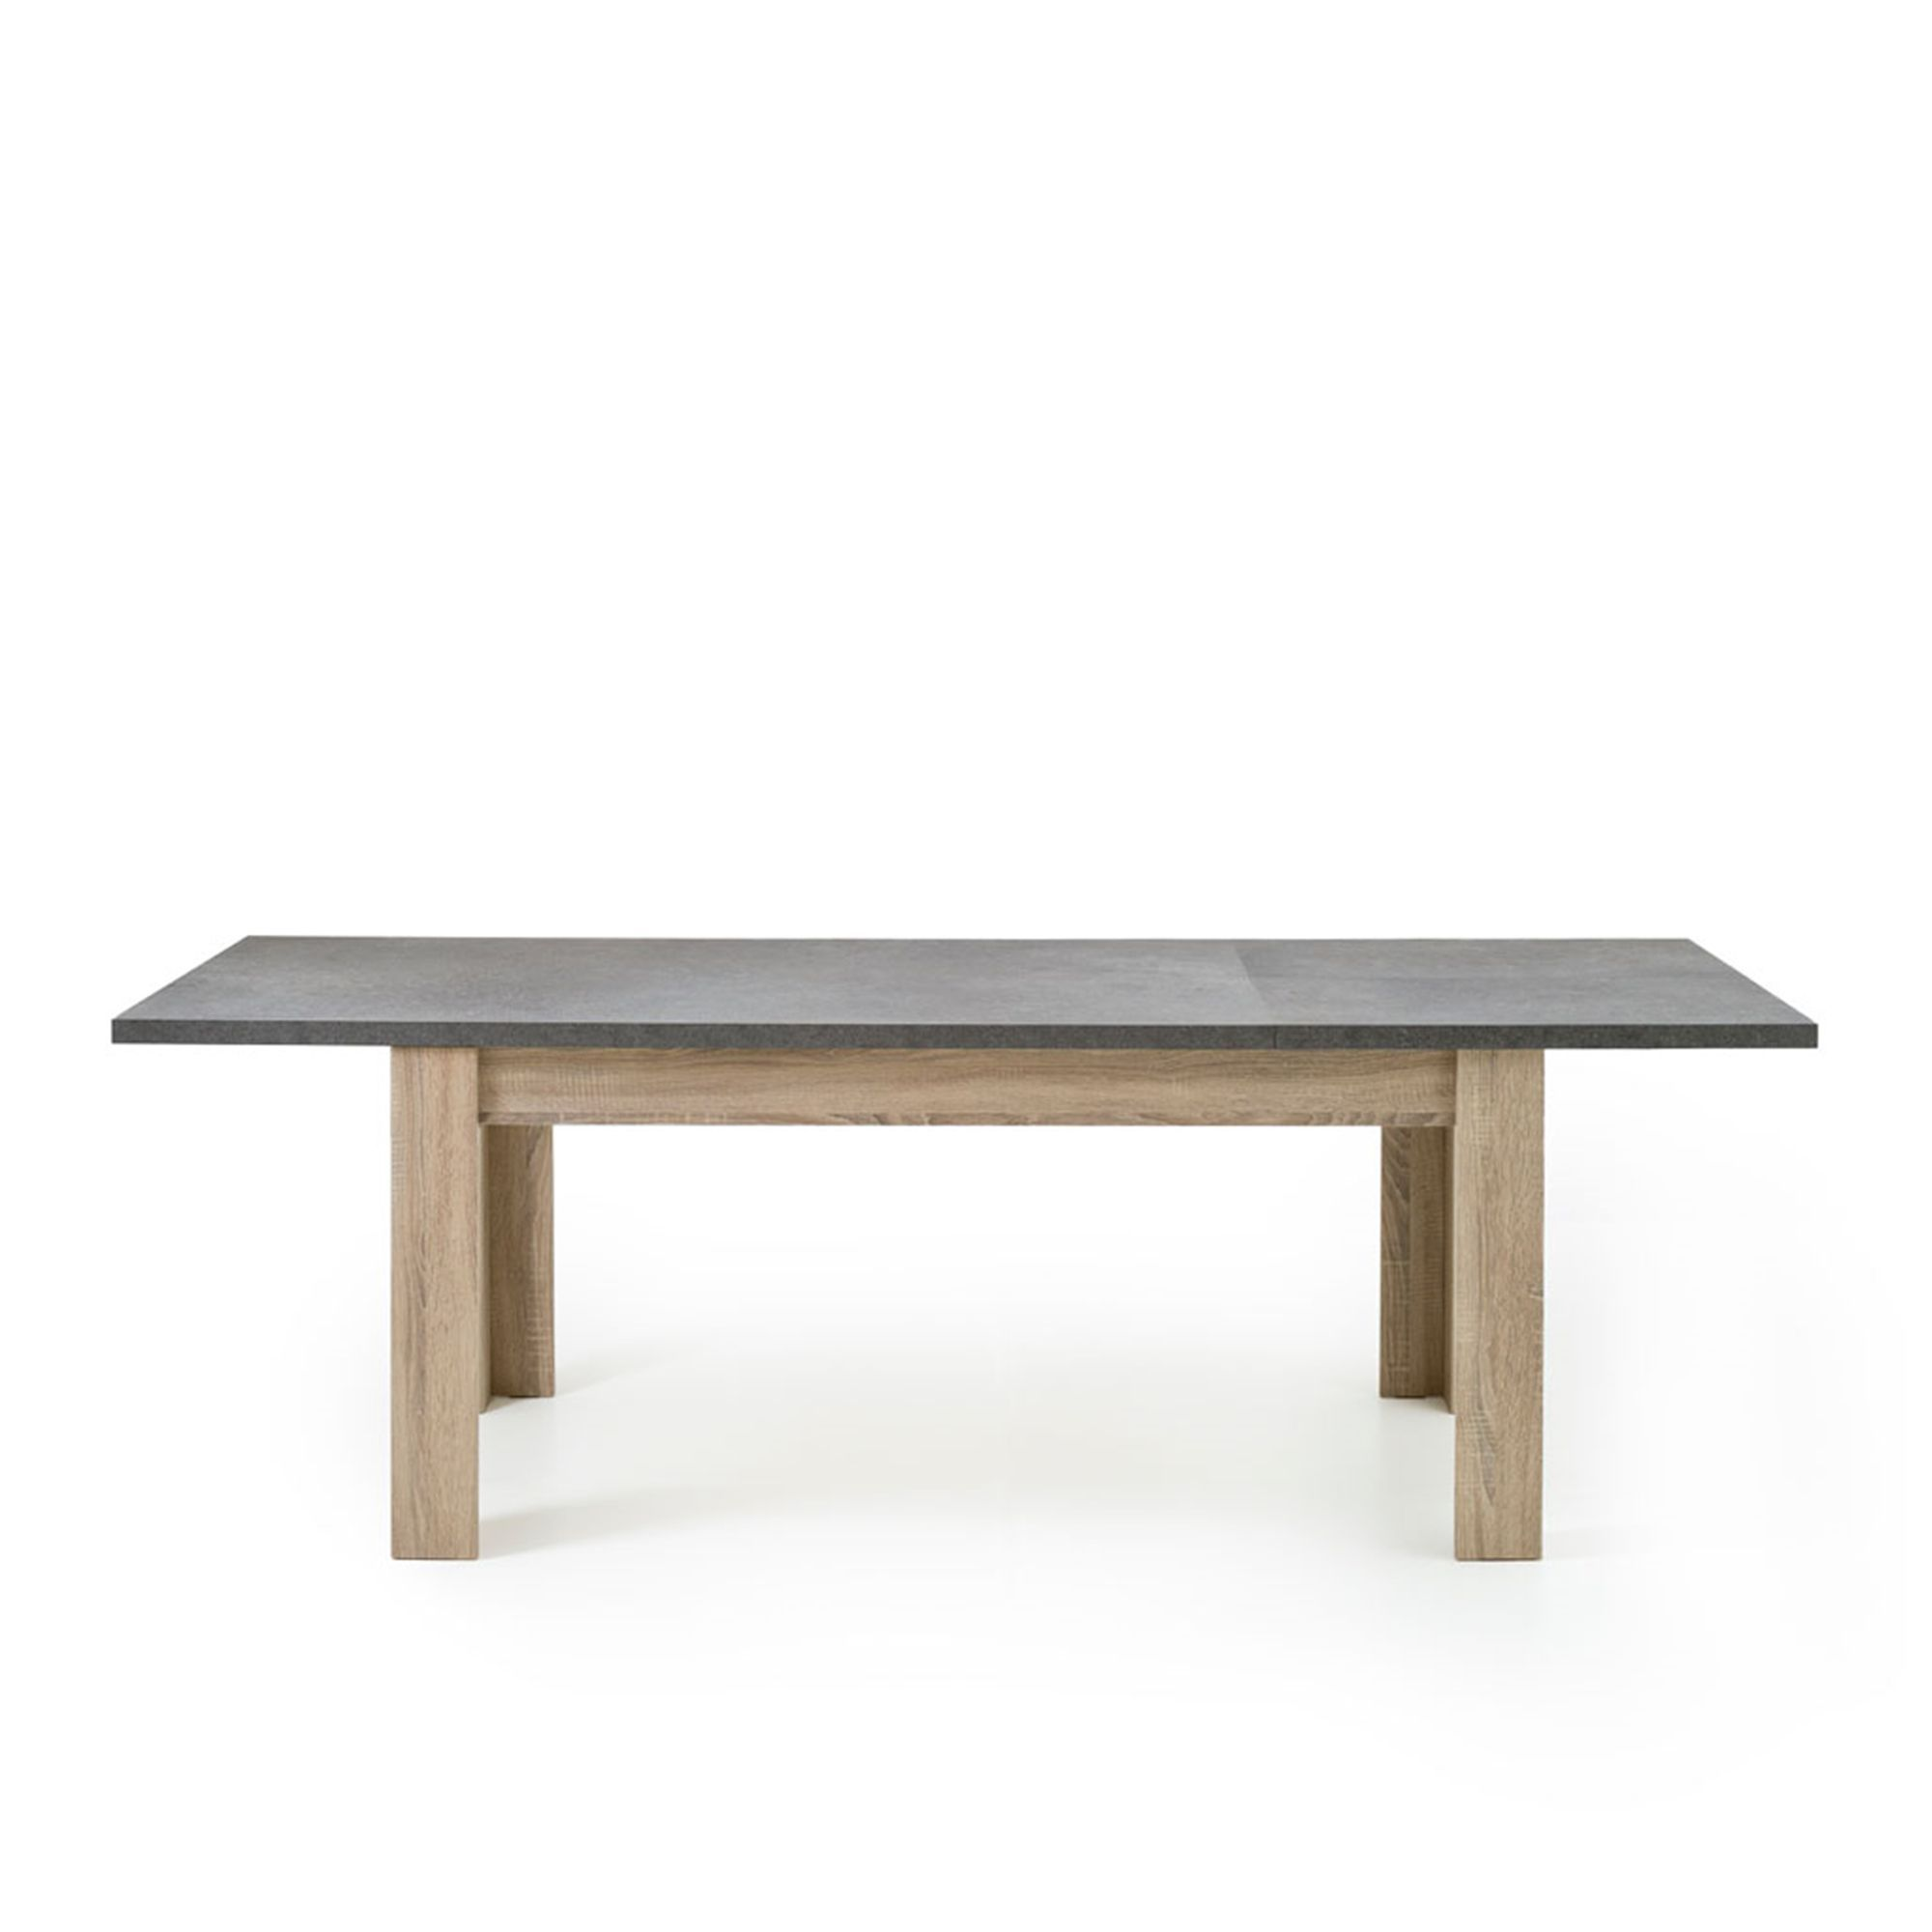 Meuble Milo Alinea Alinea Milo Table Rectangulaire Avec Allonge L160cm à